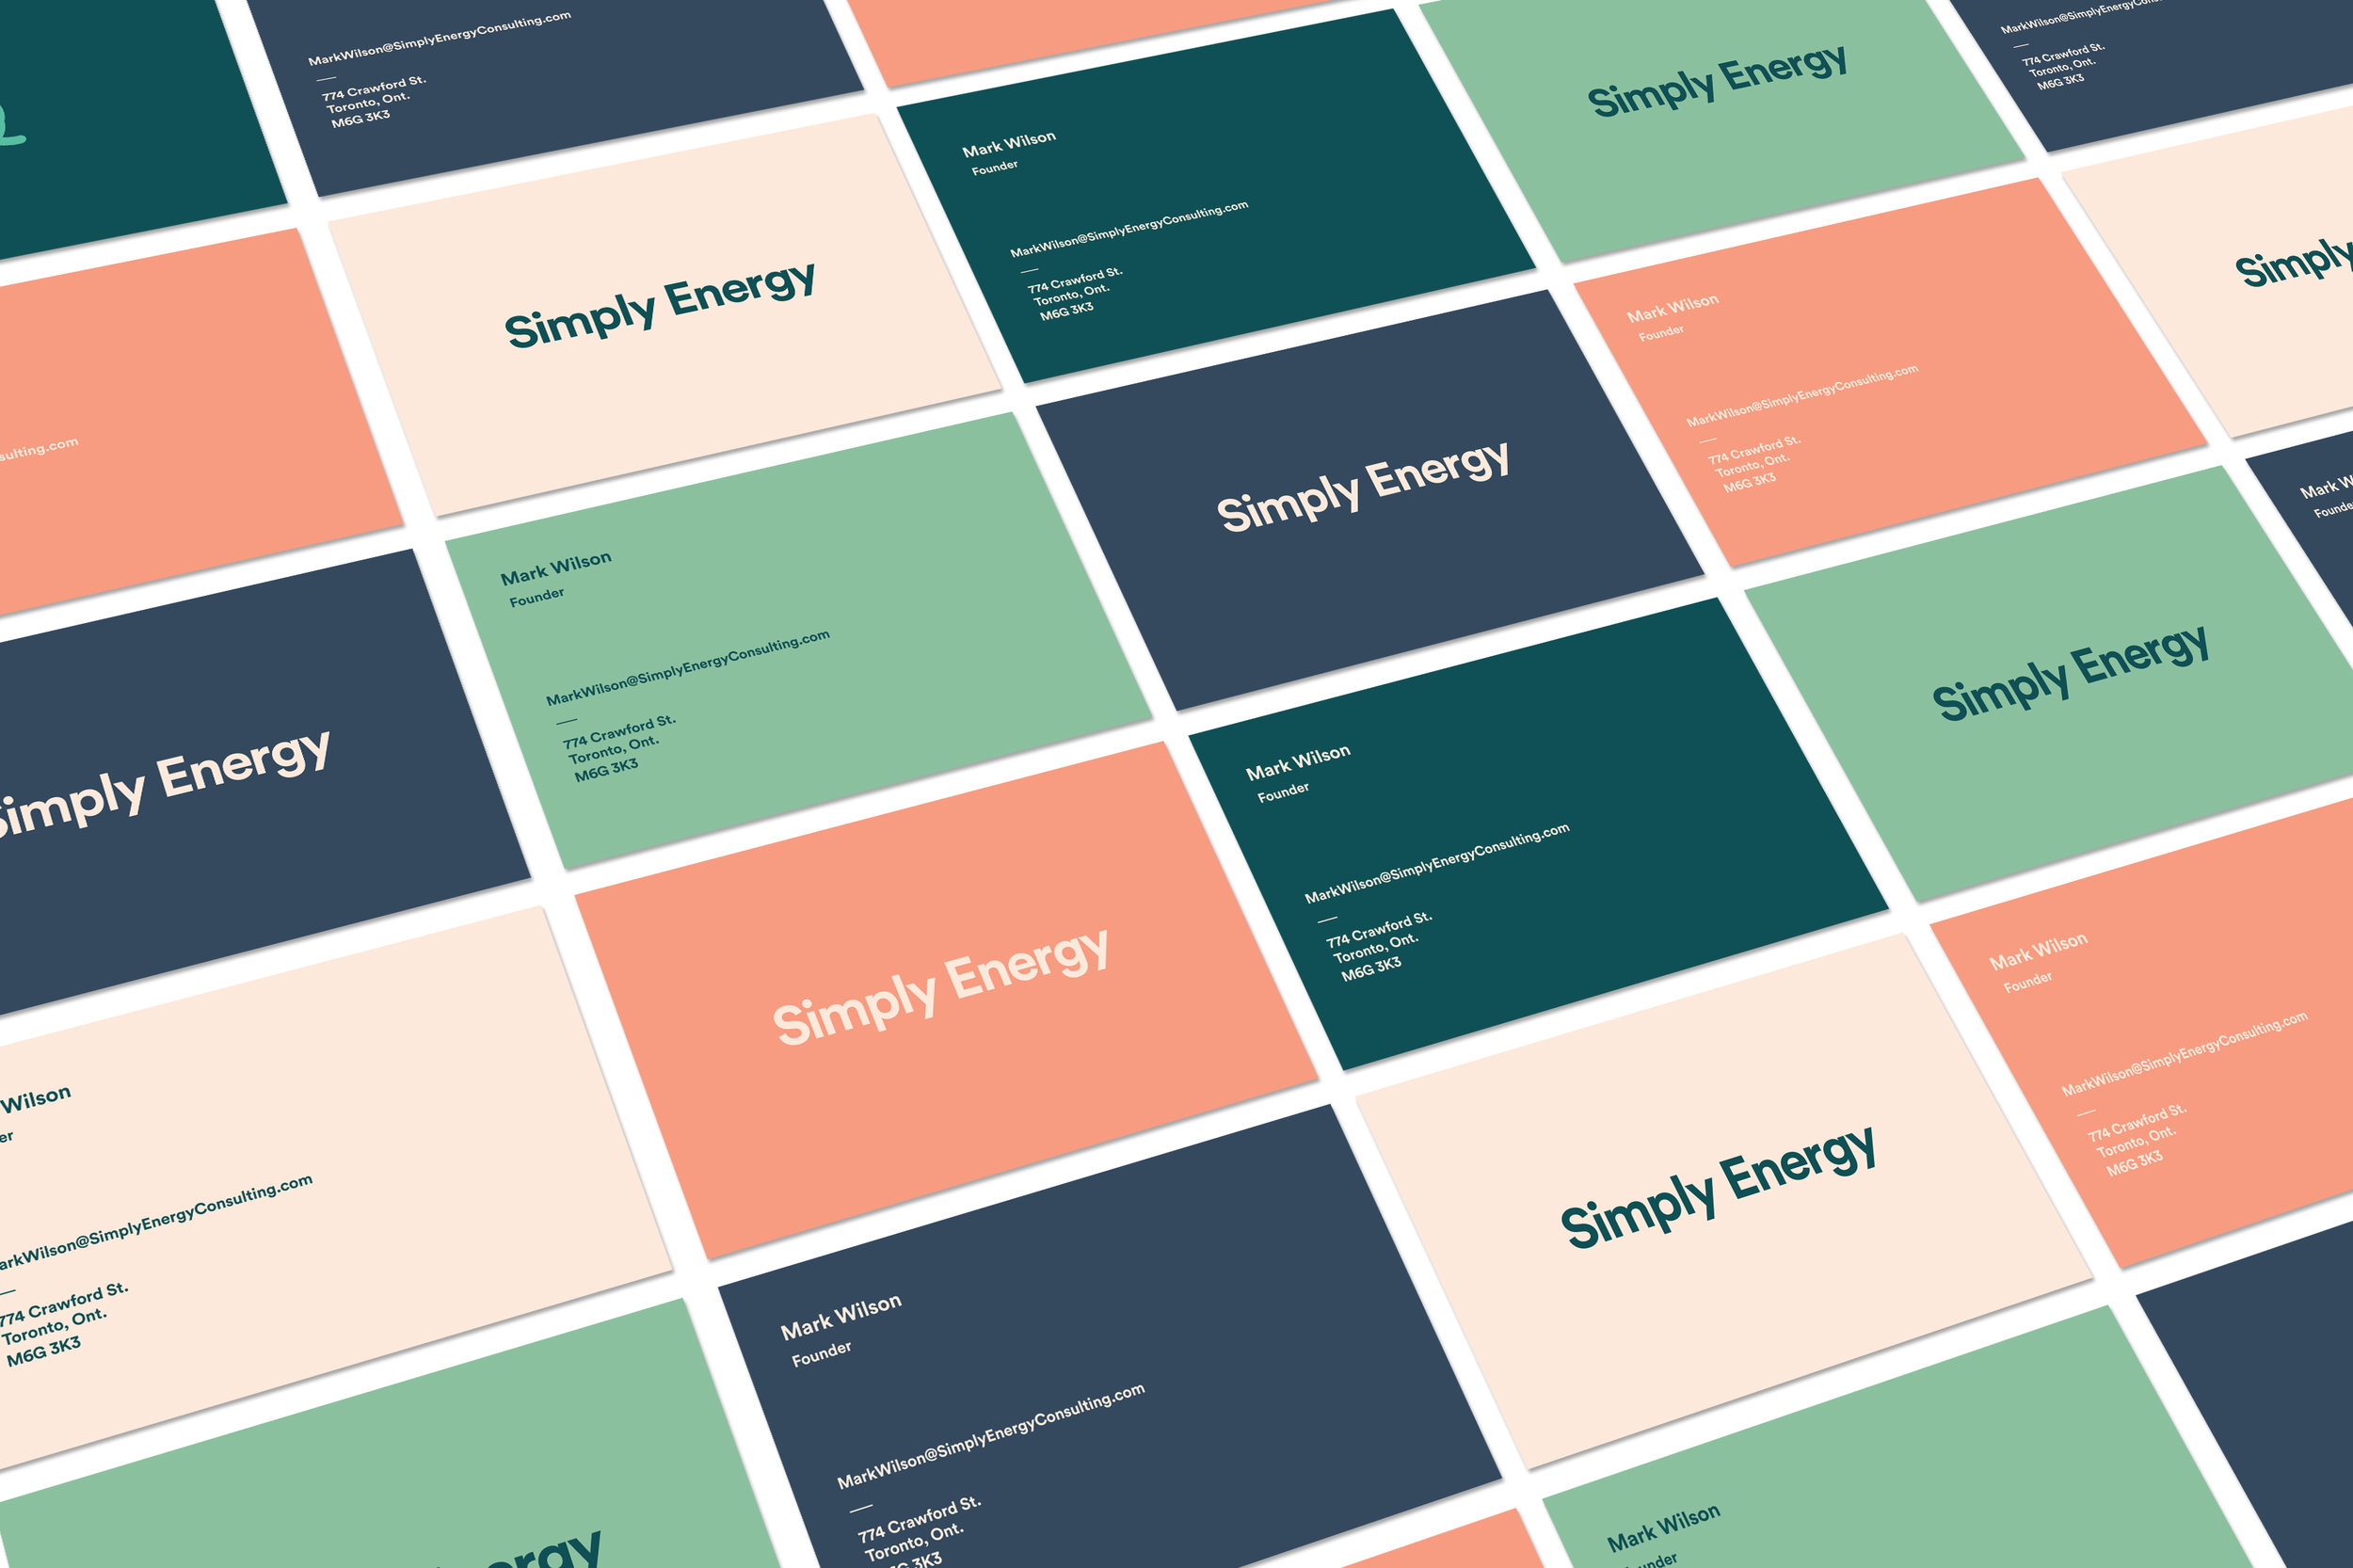 Simply Energy Business Cards Grid_1.jpg